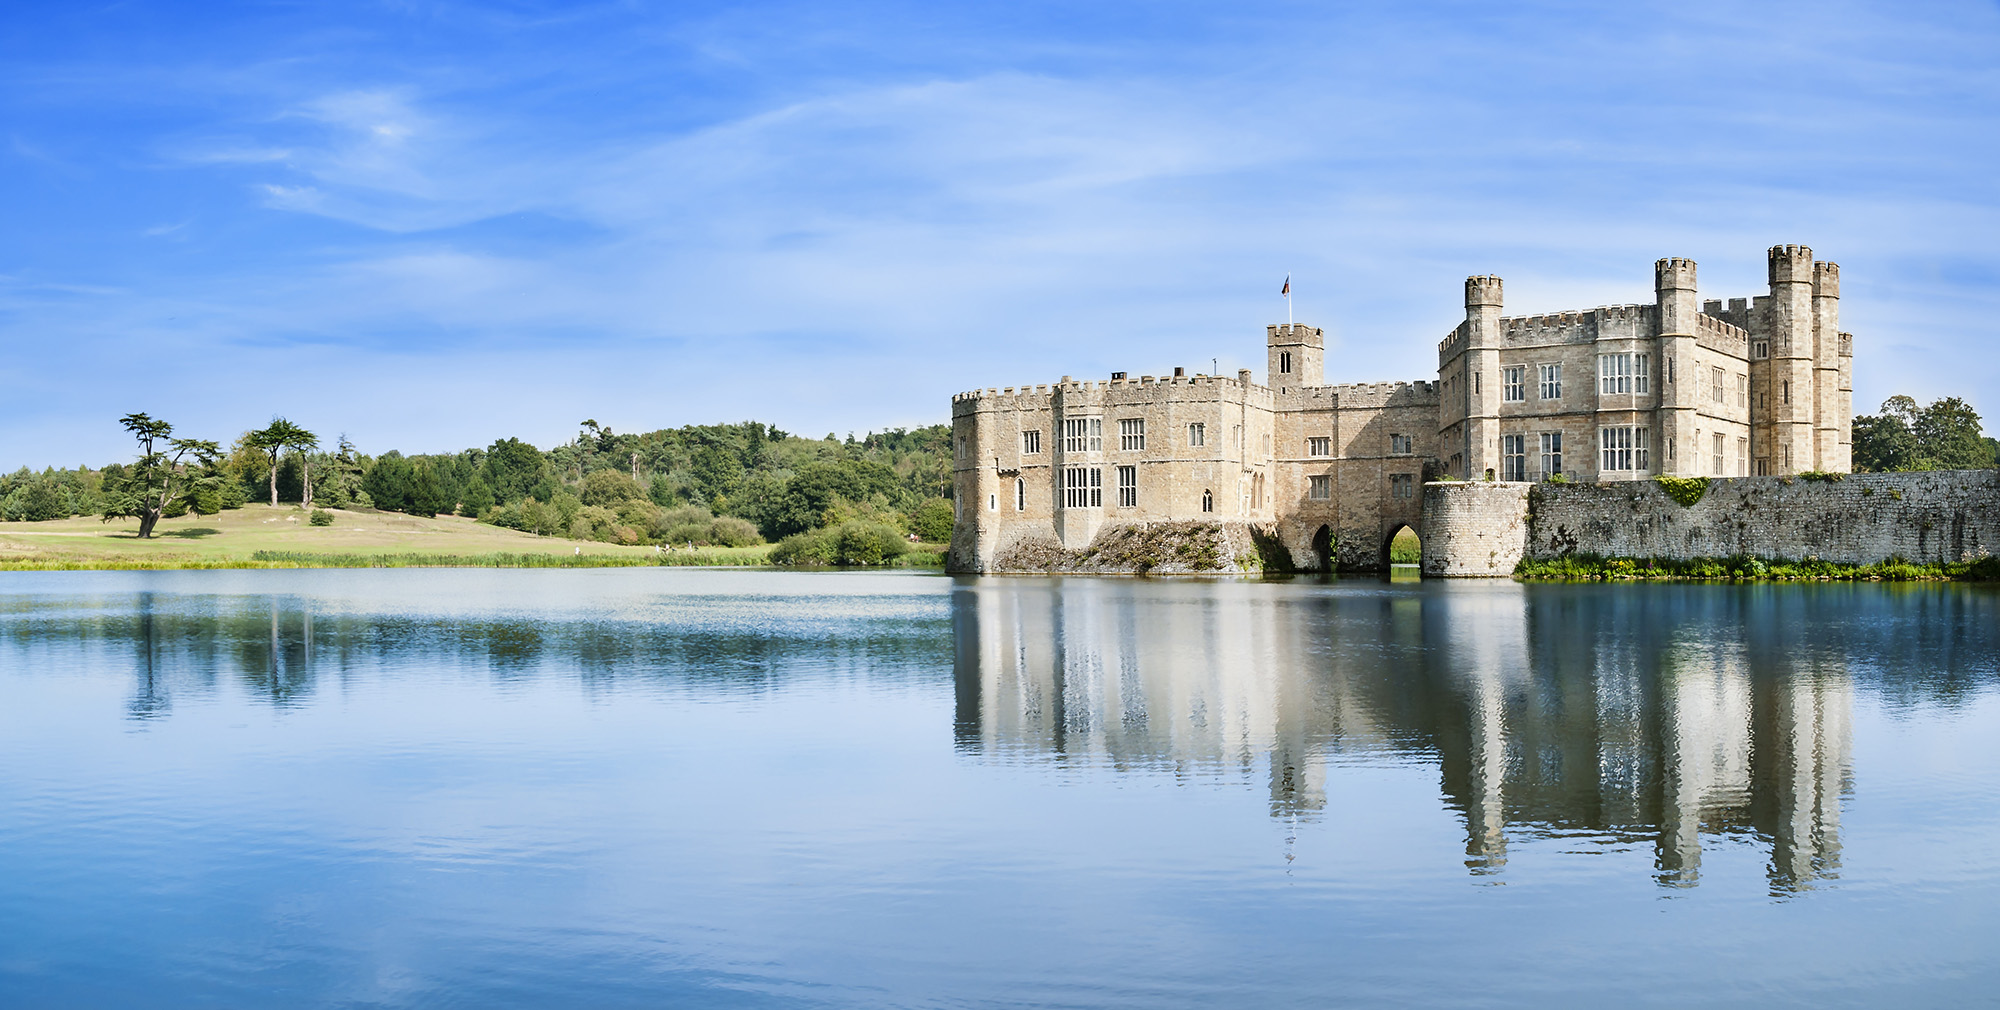 Leeds Castle in England